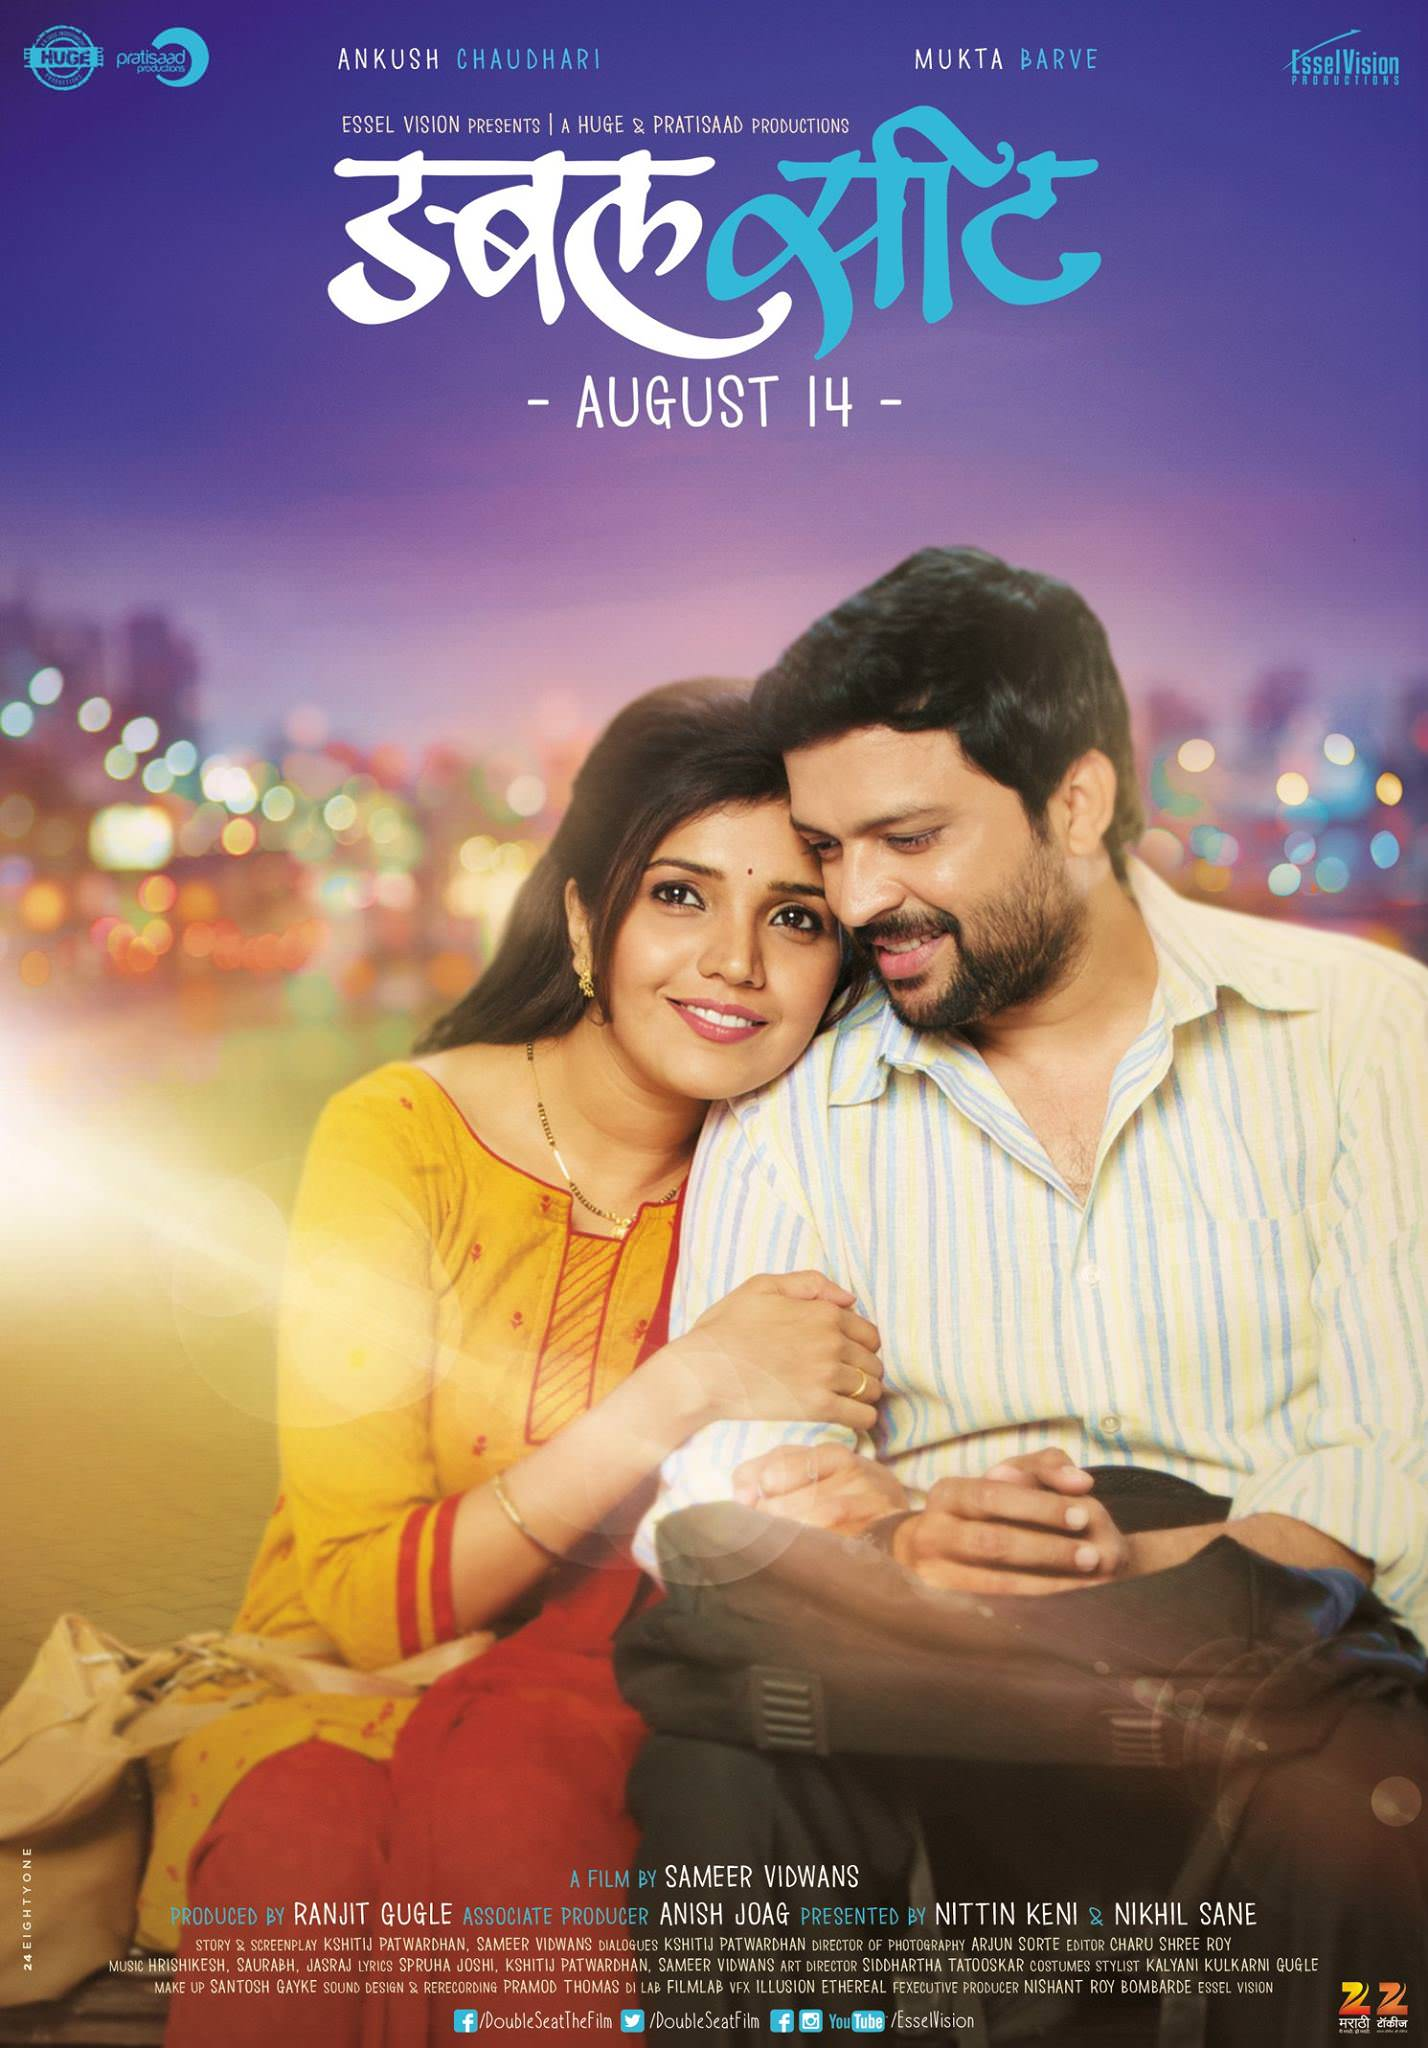 Double seat (2015) Watch Online Free Marathi Movie